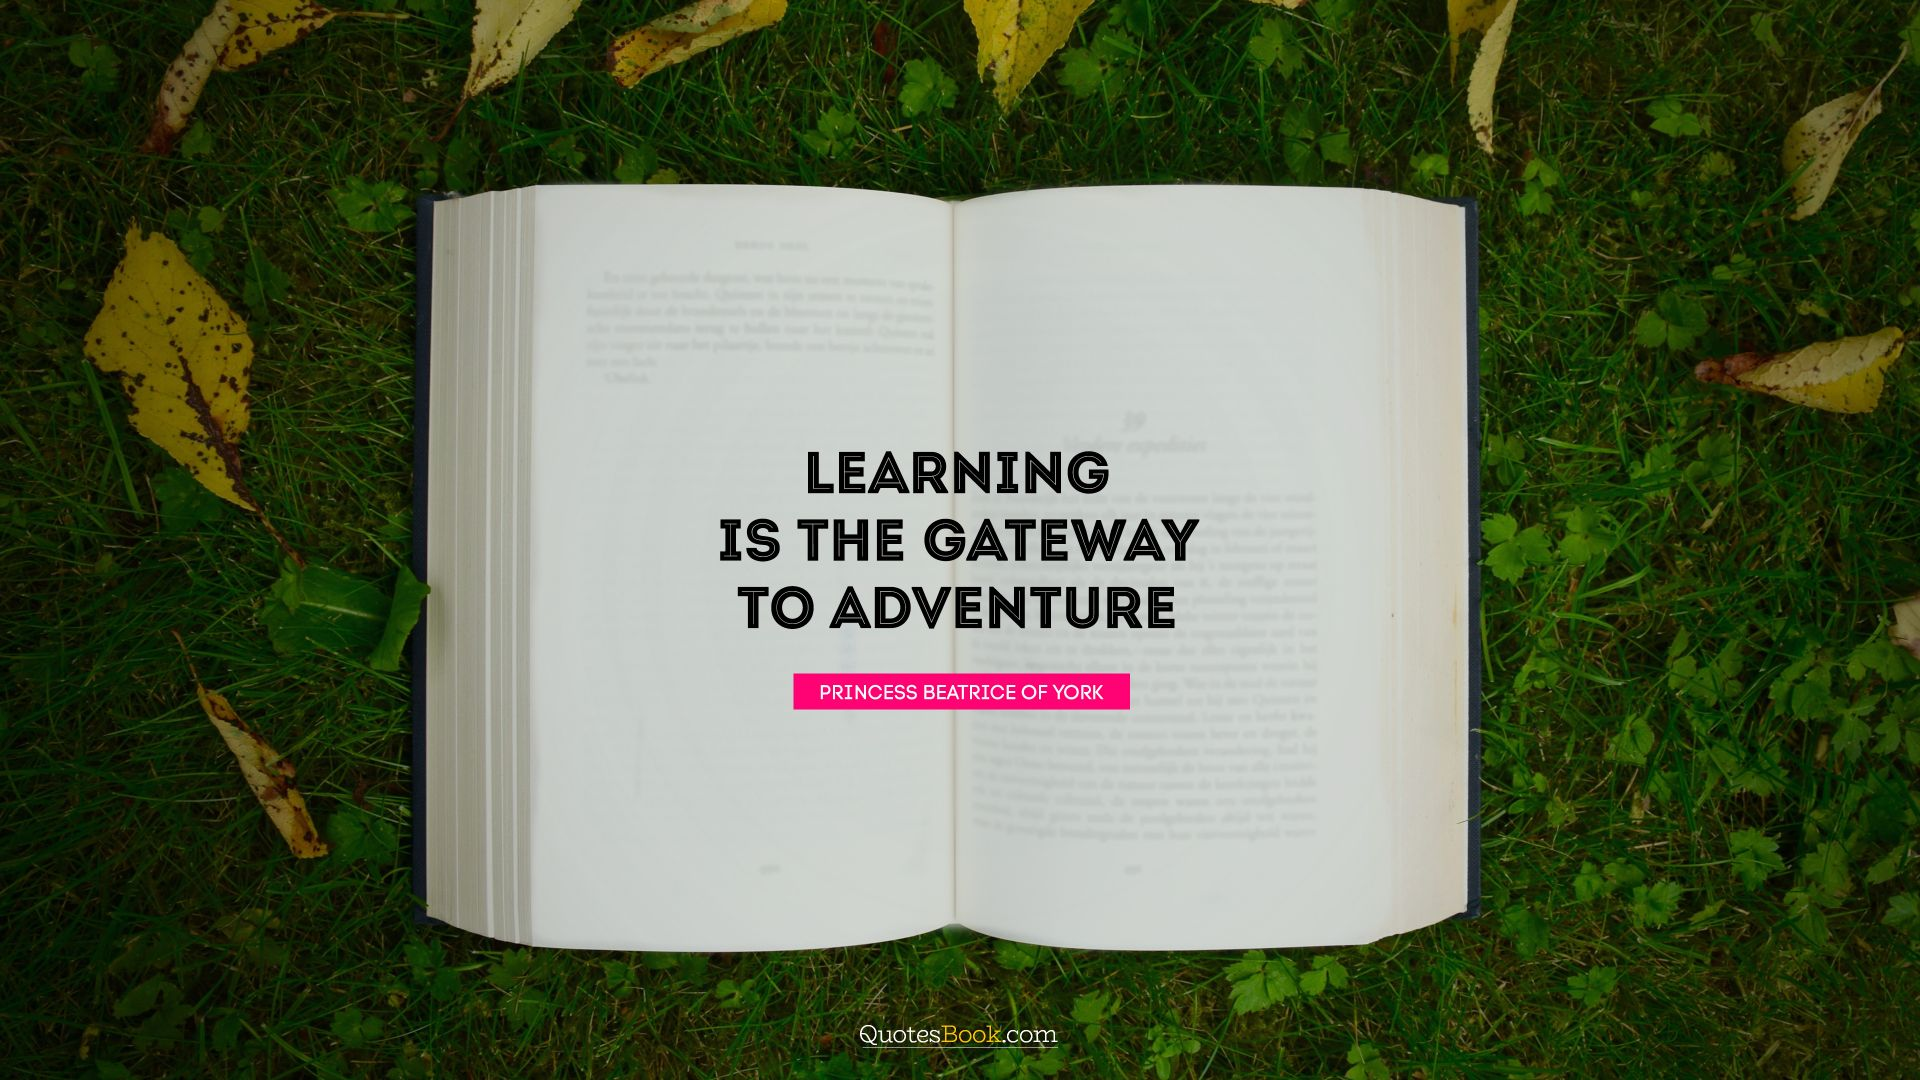 Learning is the gateway to adventure. - Quote by Princess Beatrice of York